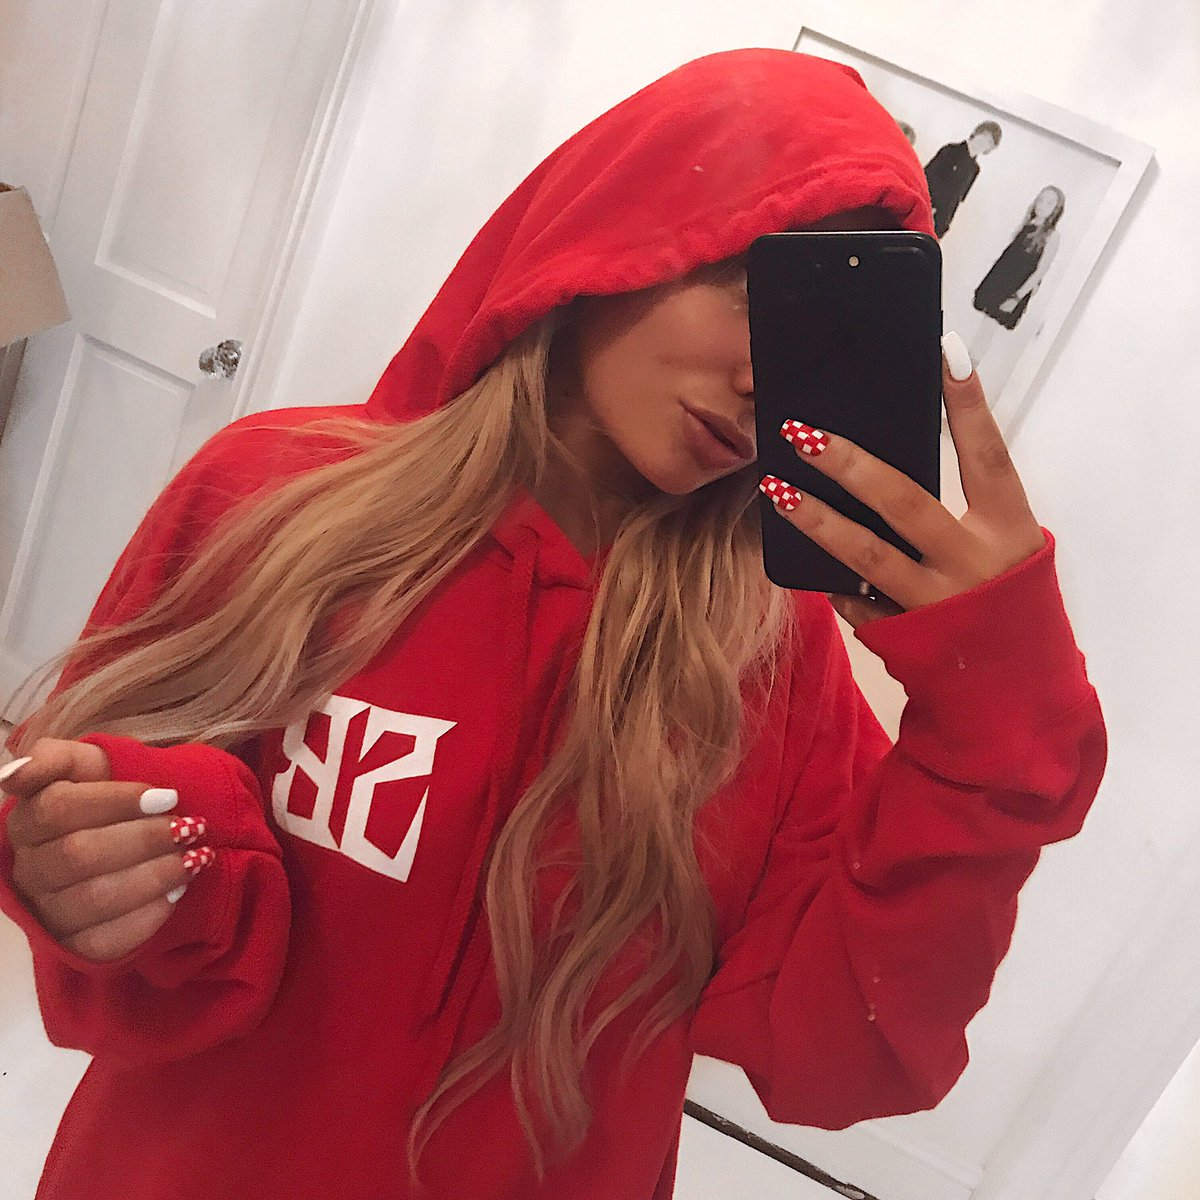 saffronbarker on twitter obsessing w my new merch. Black Bedroom Furniture Sets. Home Design Ideas